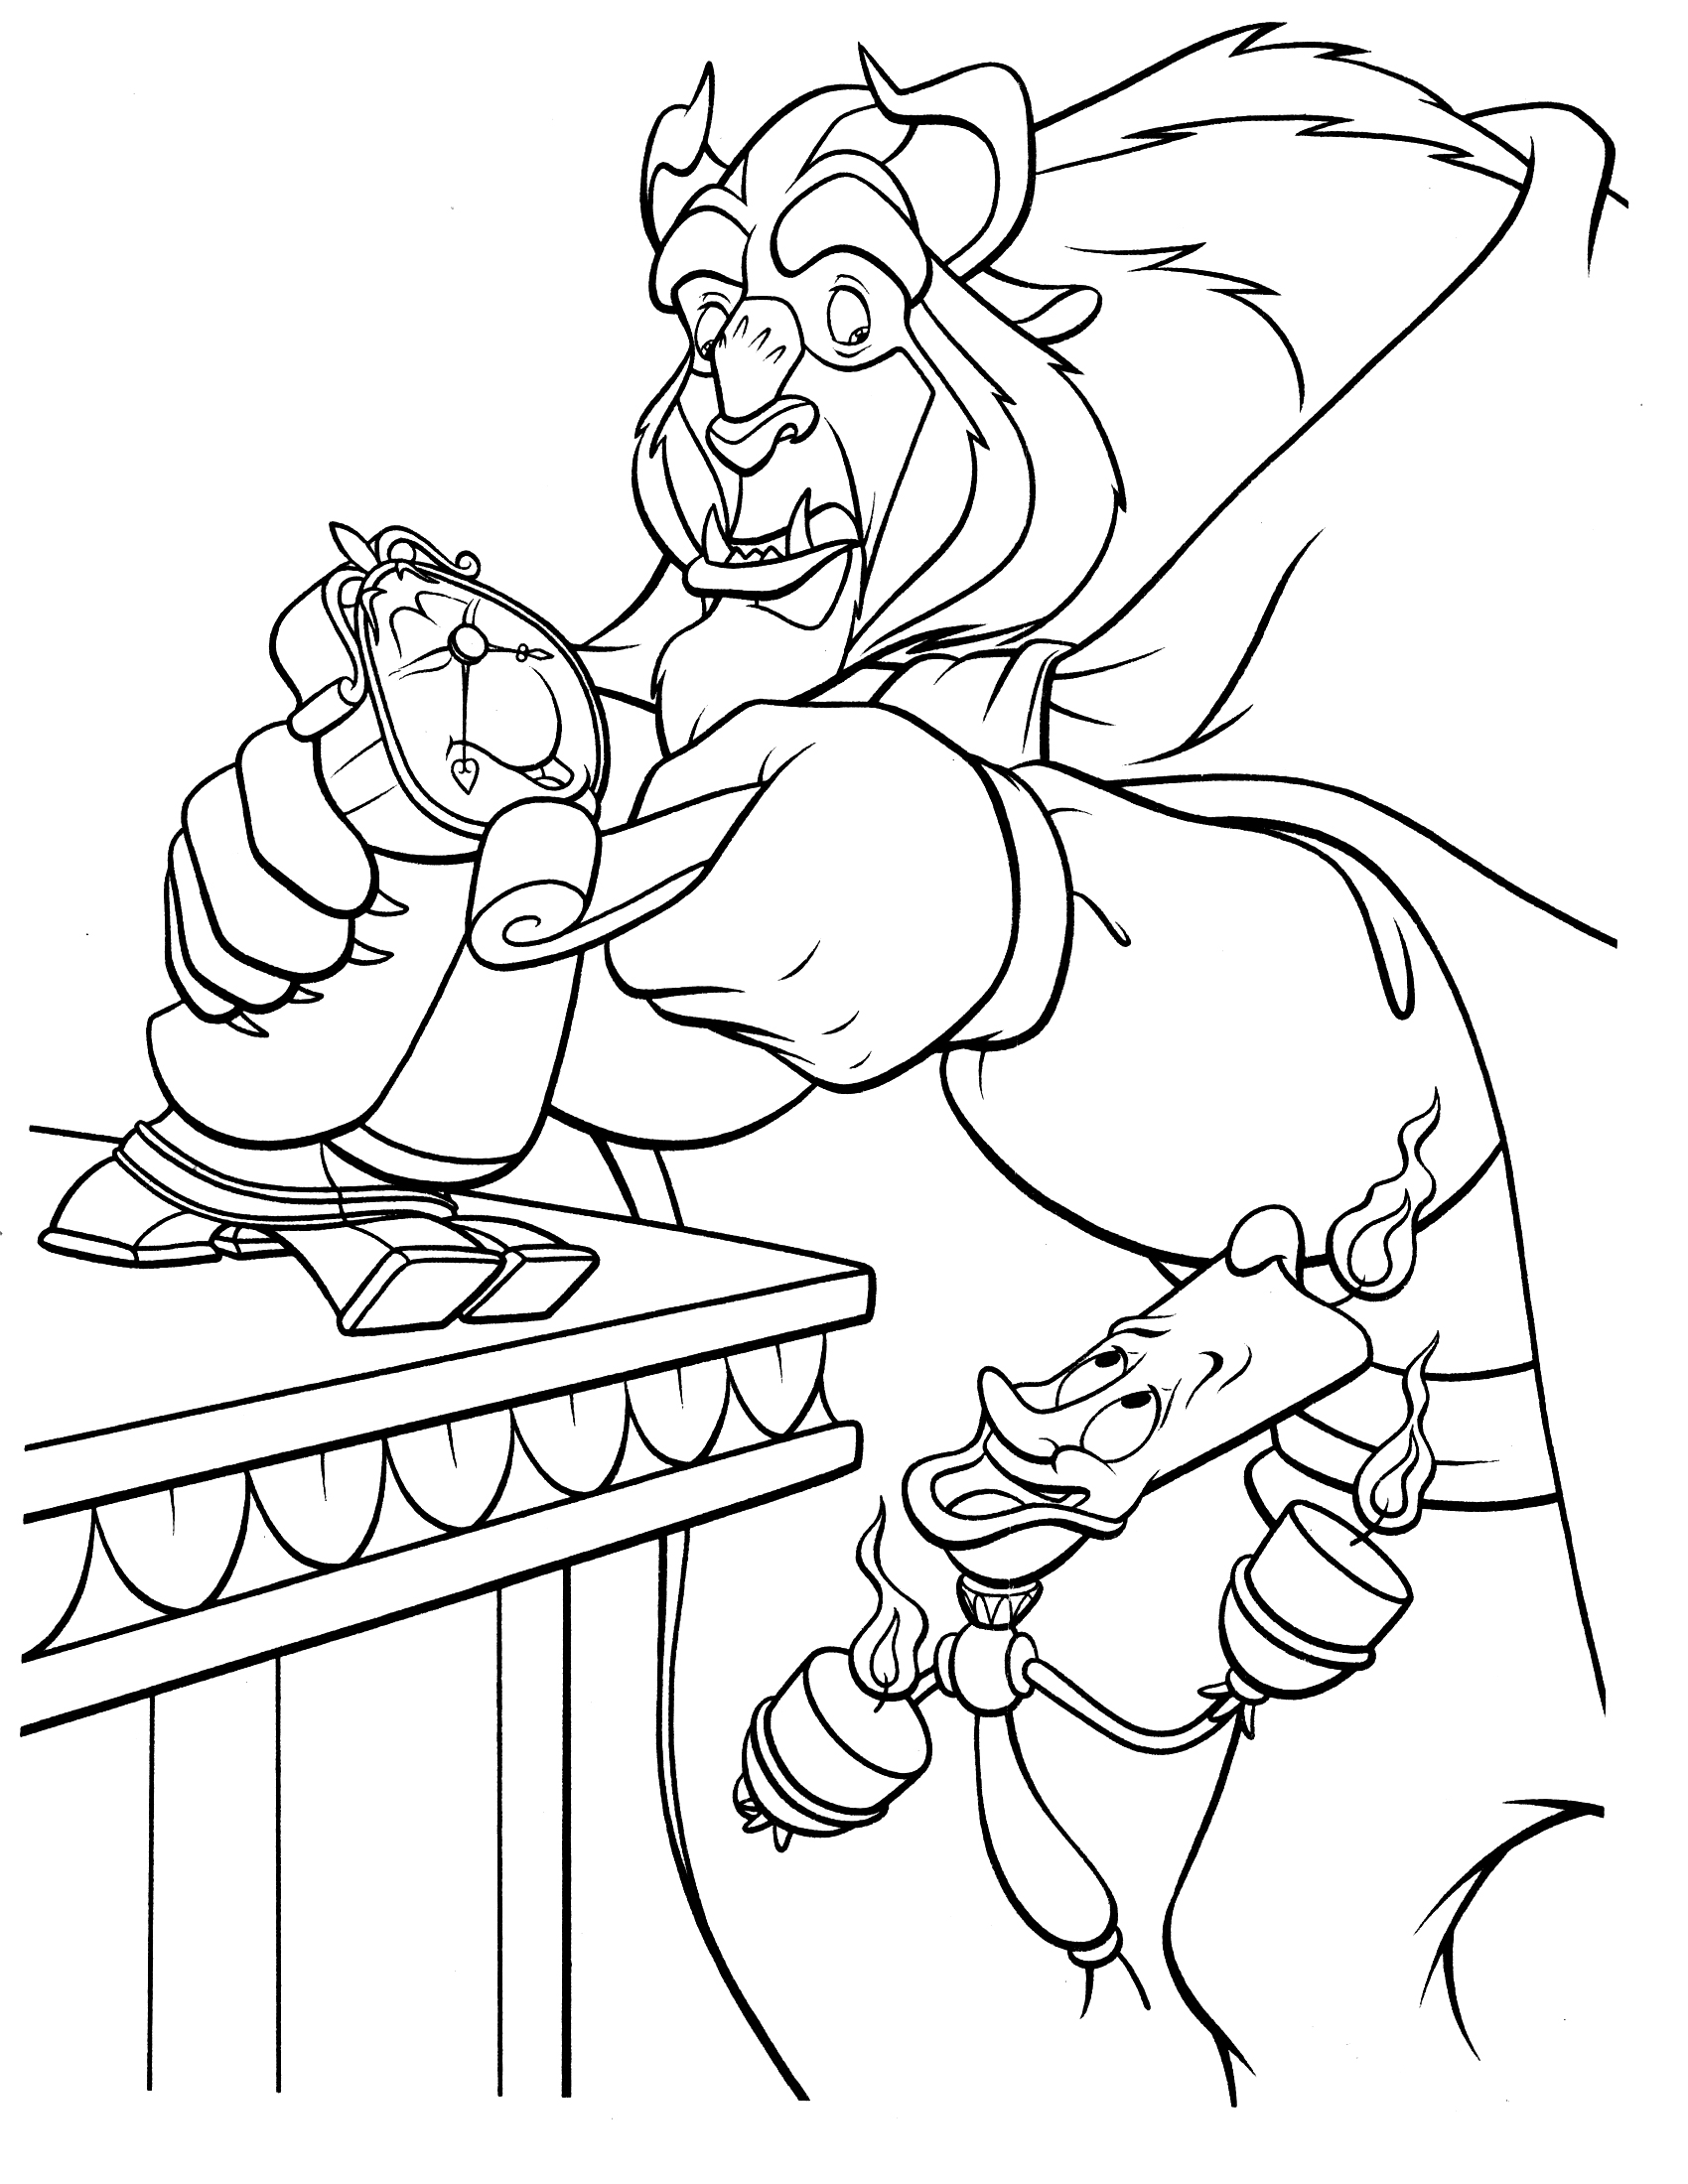 beauty and the beast colouring page 20 best printable beauty and the beast rose coloring pages beauty the page beast colouring and